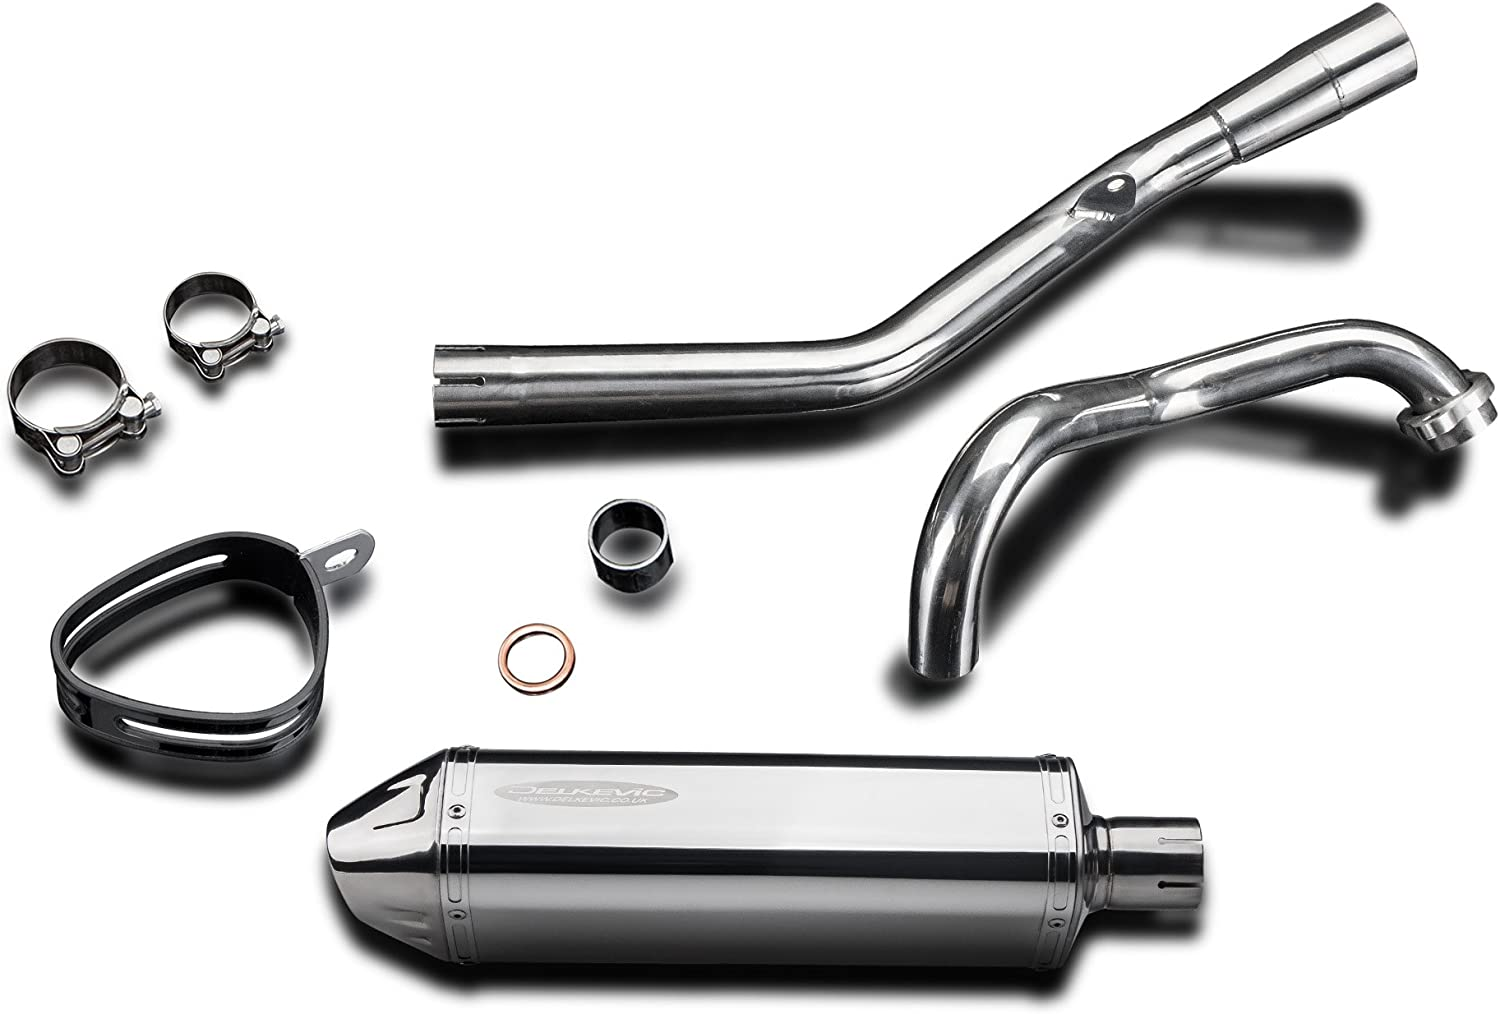 Delkevic Full 1-1 Exhaust compatible with Yamaha YZF-R125 Stubby 13 Stainless Steel Tri-Oval Muffler Exhaust 11-16